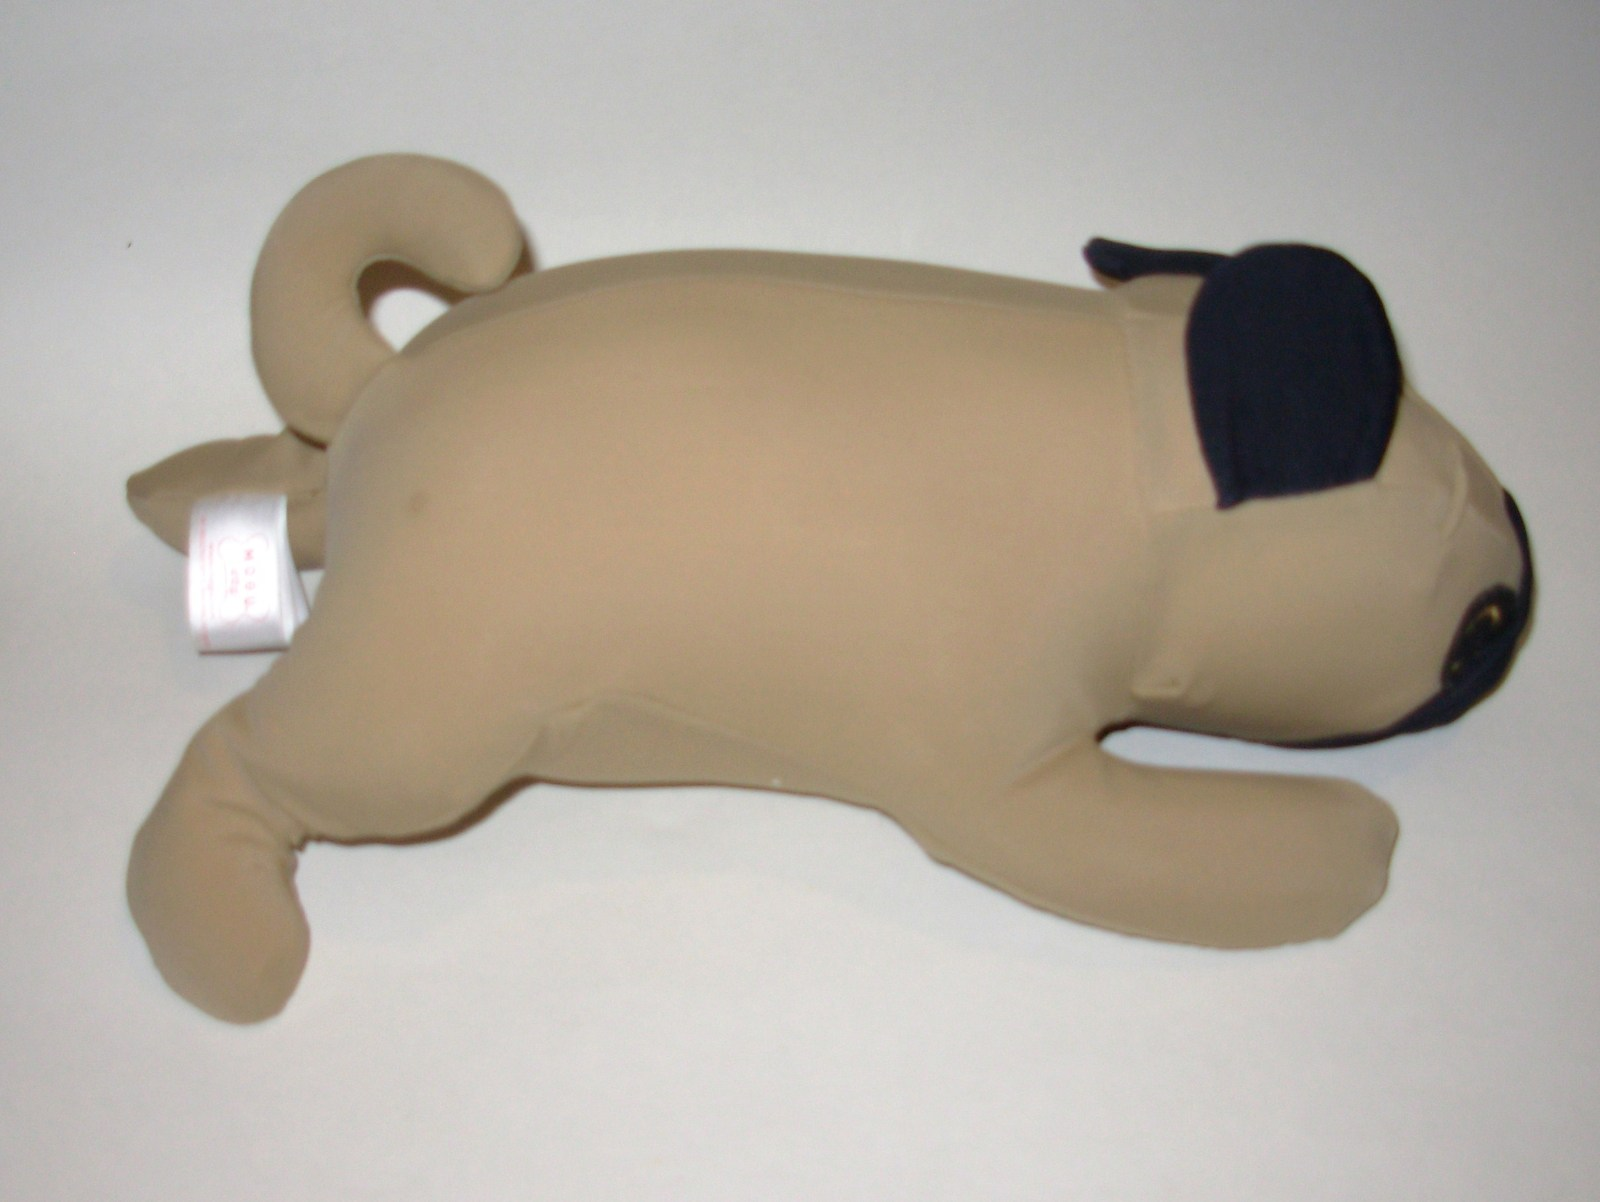 Stuffed Animal Dog Pillow : Mogu Dog Pug Puppy Plush Microbead Pillow Stuffed Animal Tan Brown - Other